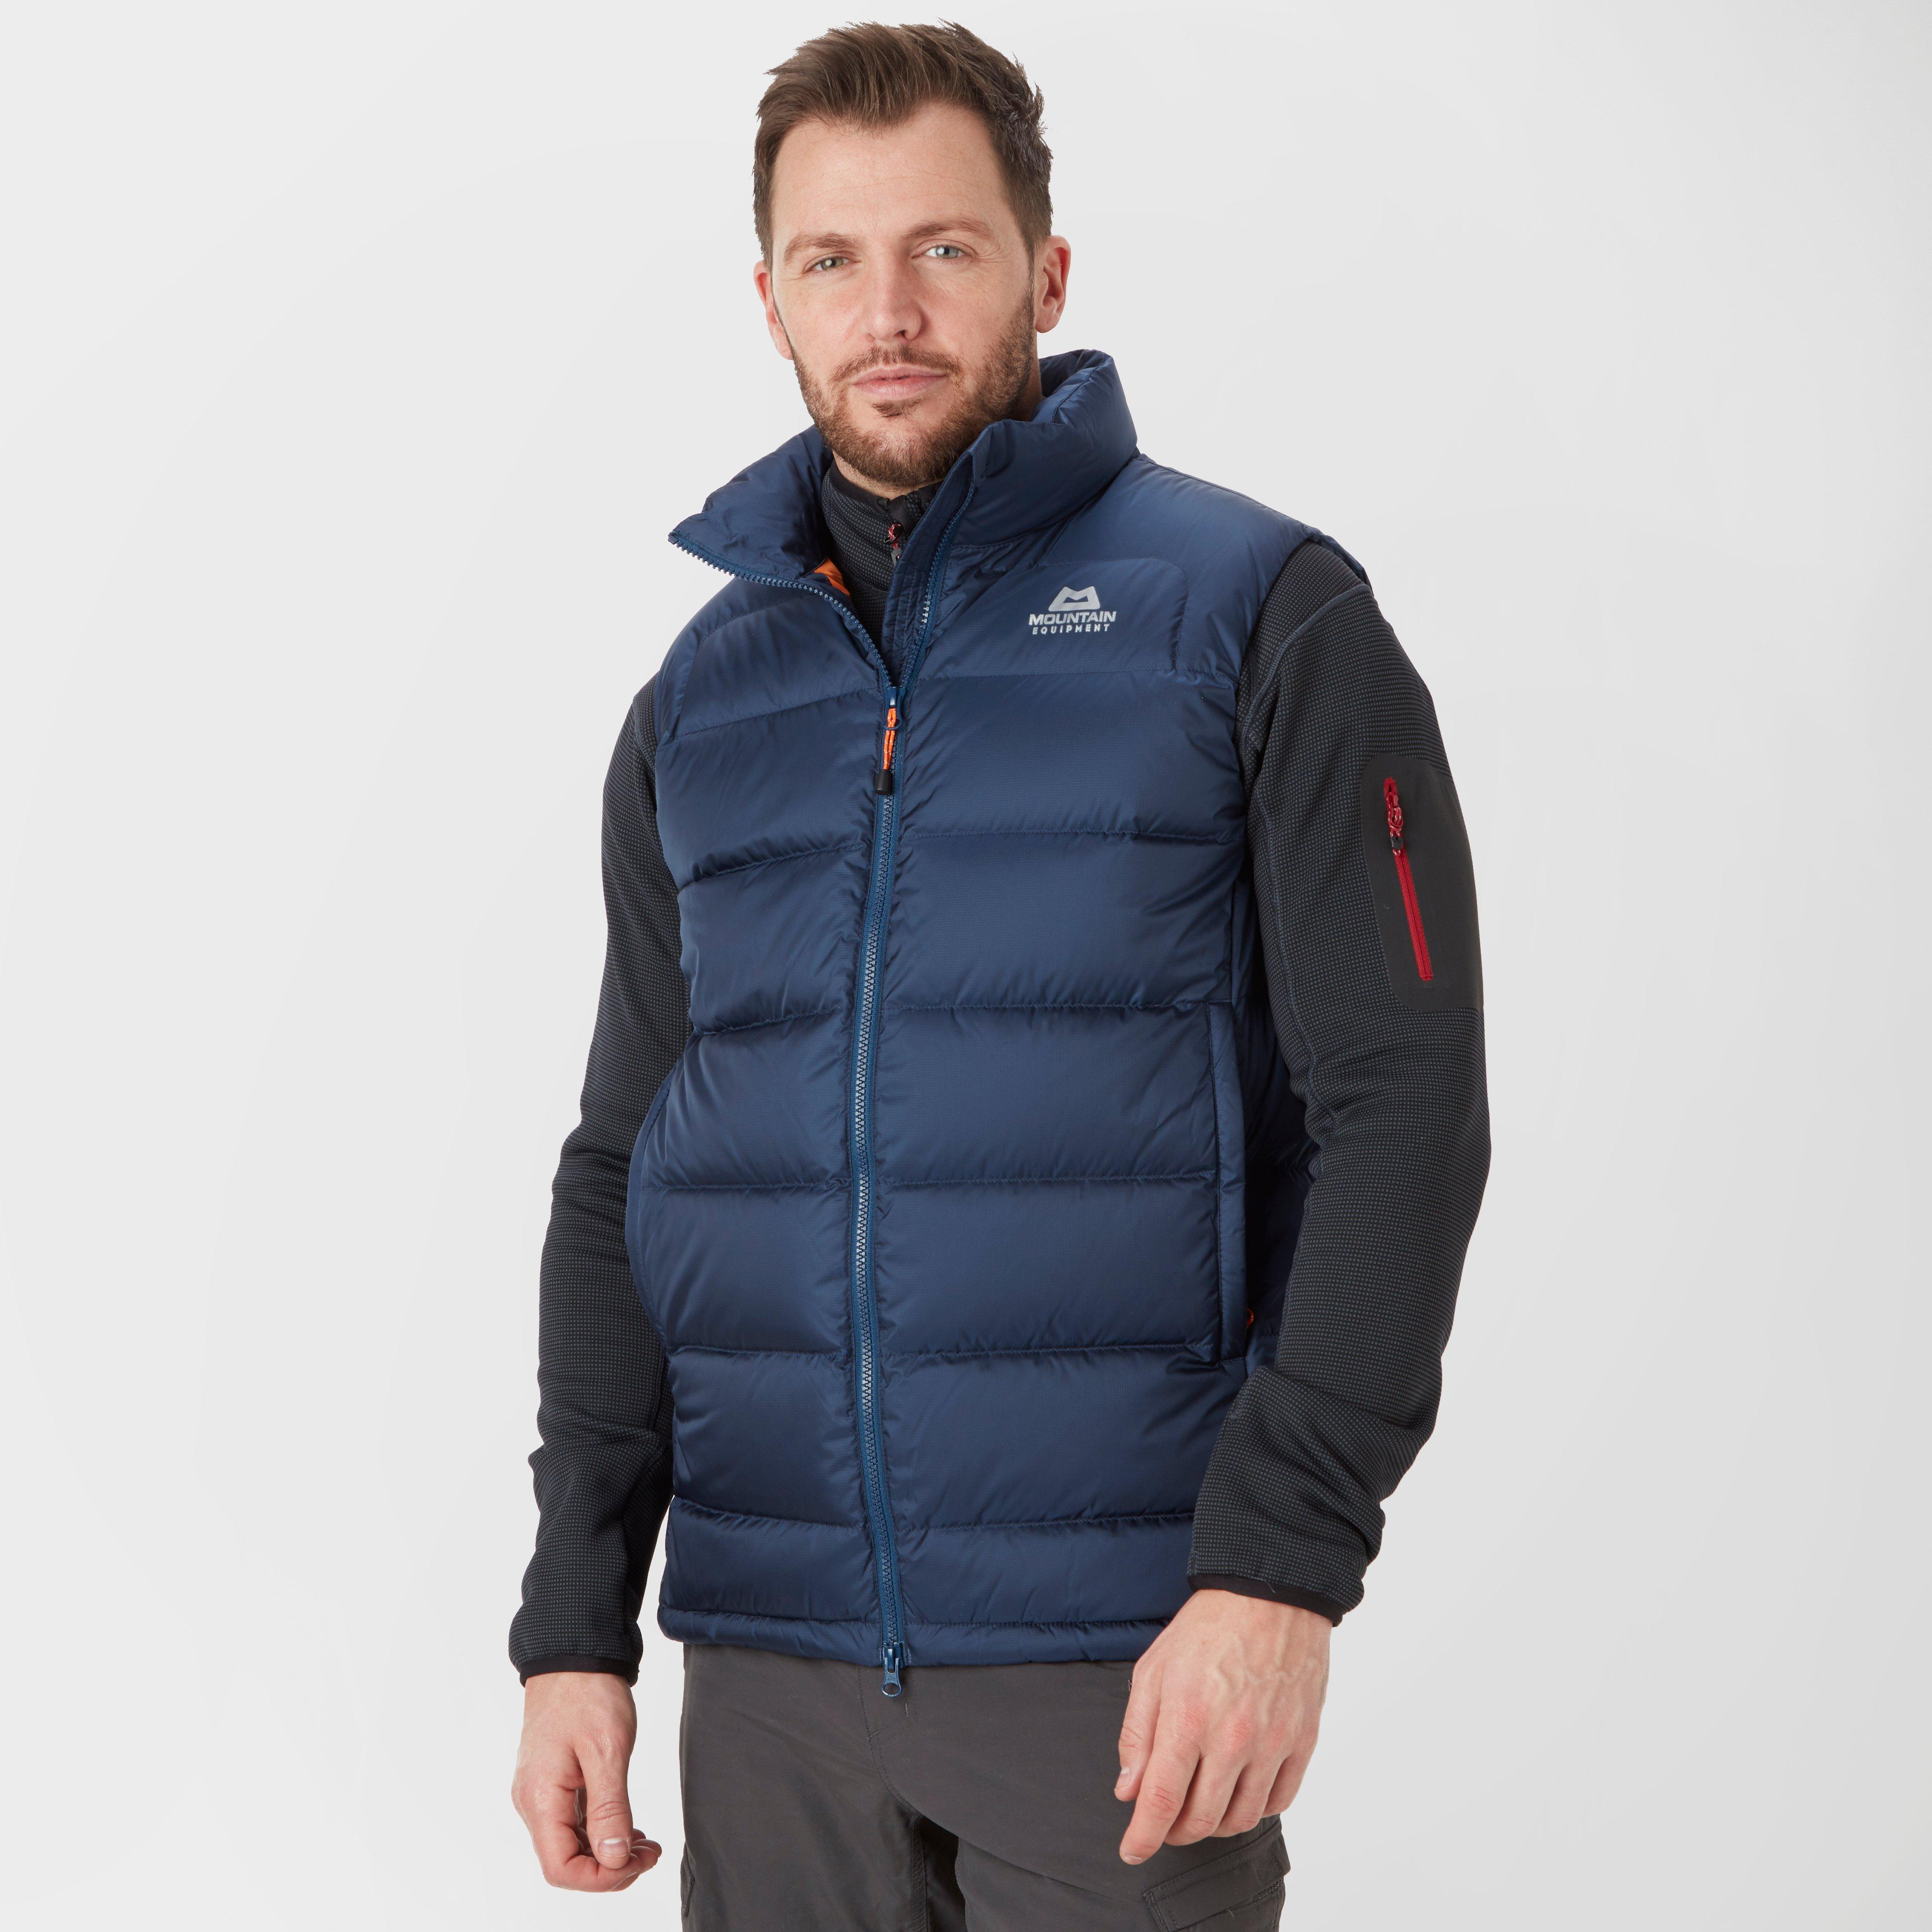 327c854a238 Mountain Equipment Lightline Down Jacket – Men's | Compare outdoor ...